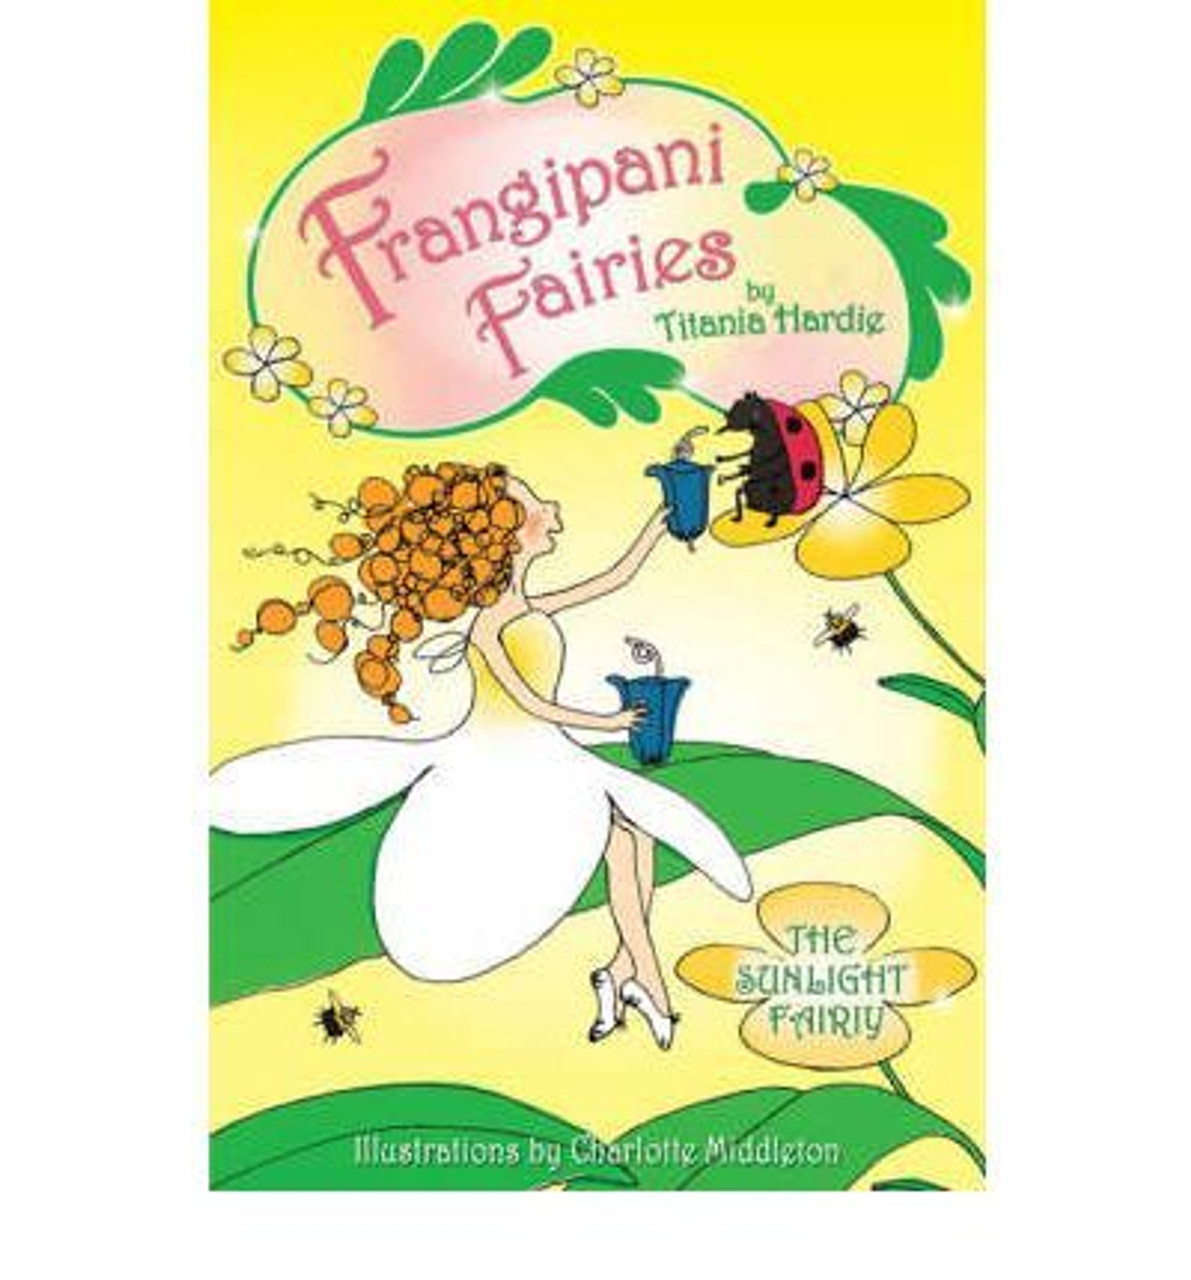 Hardie, Titania / Frangipani Fairies: The Sunlight Fairy